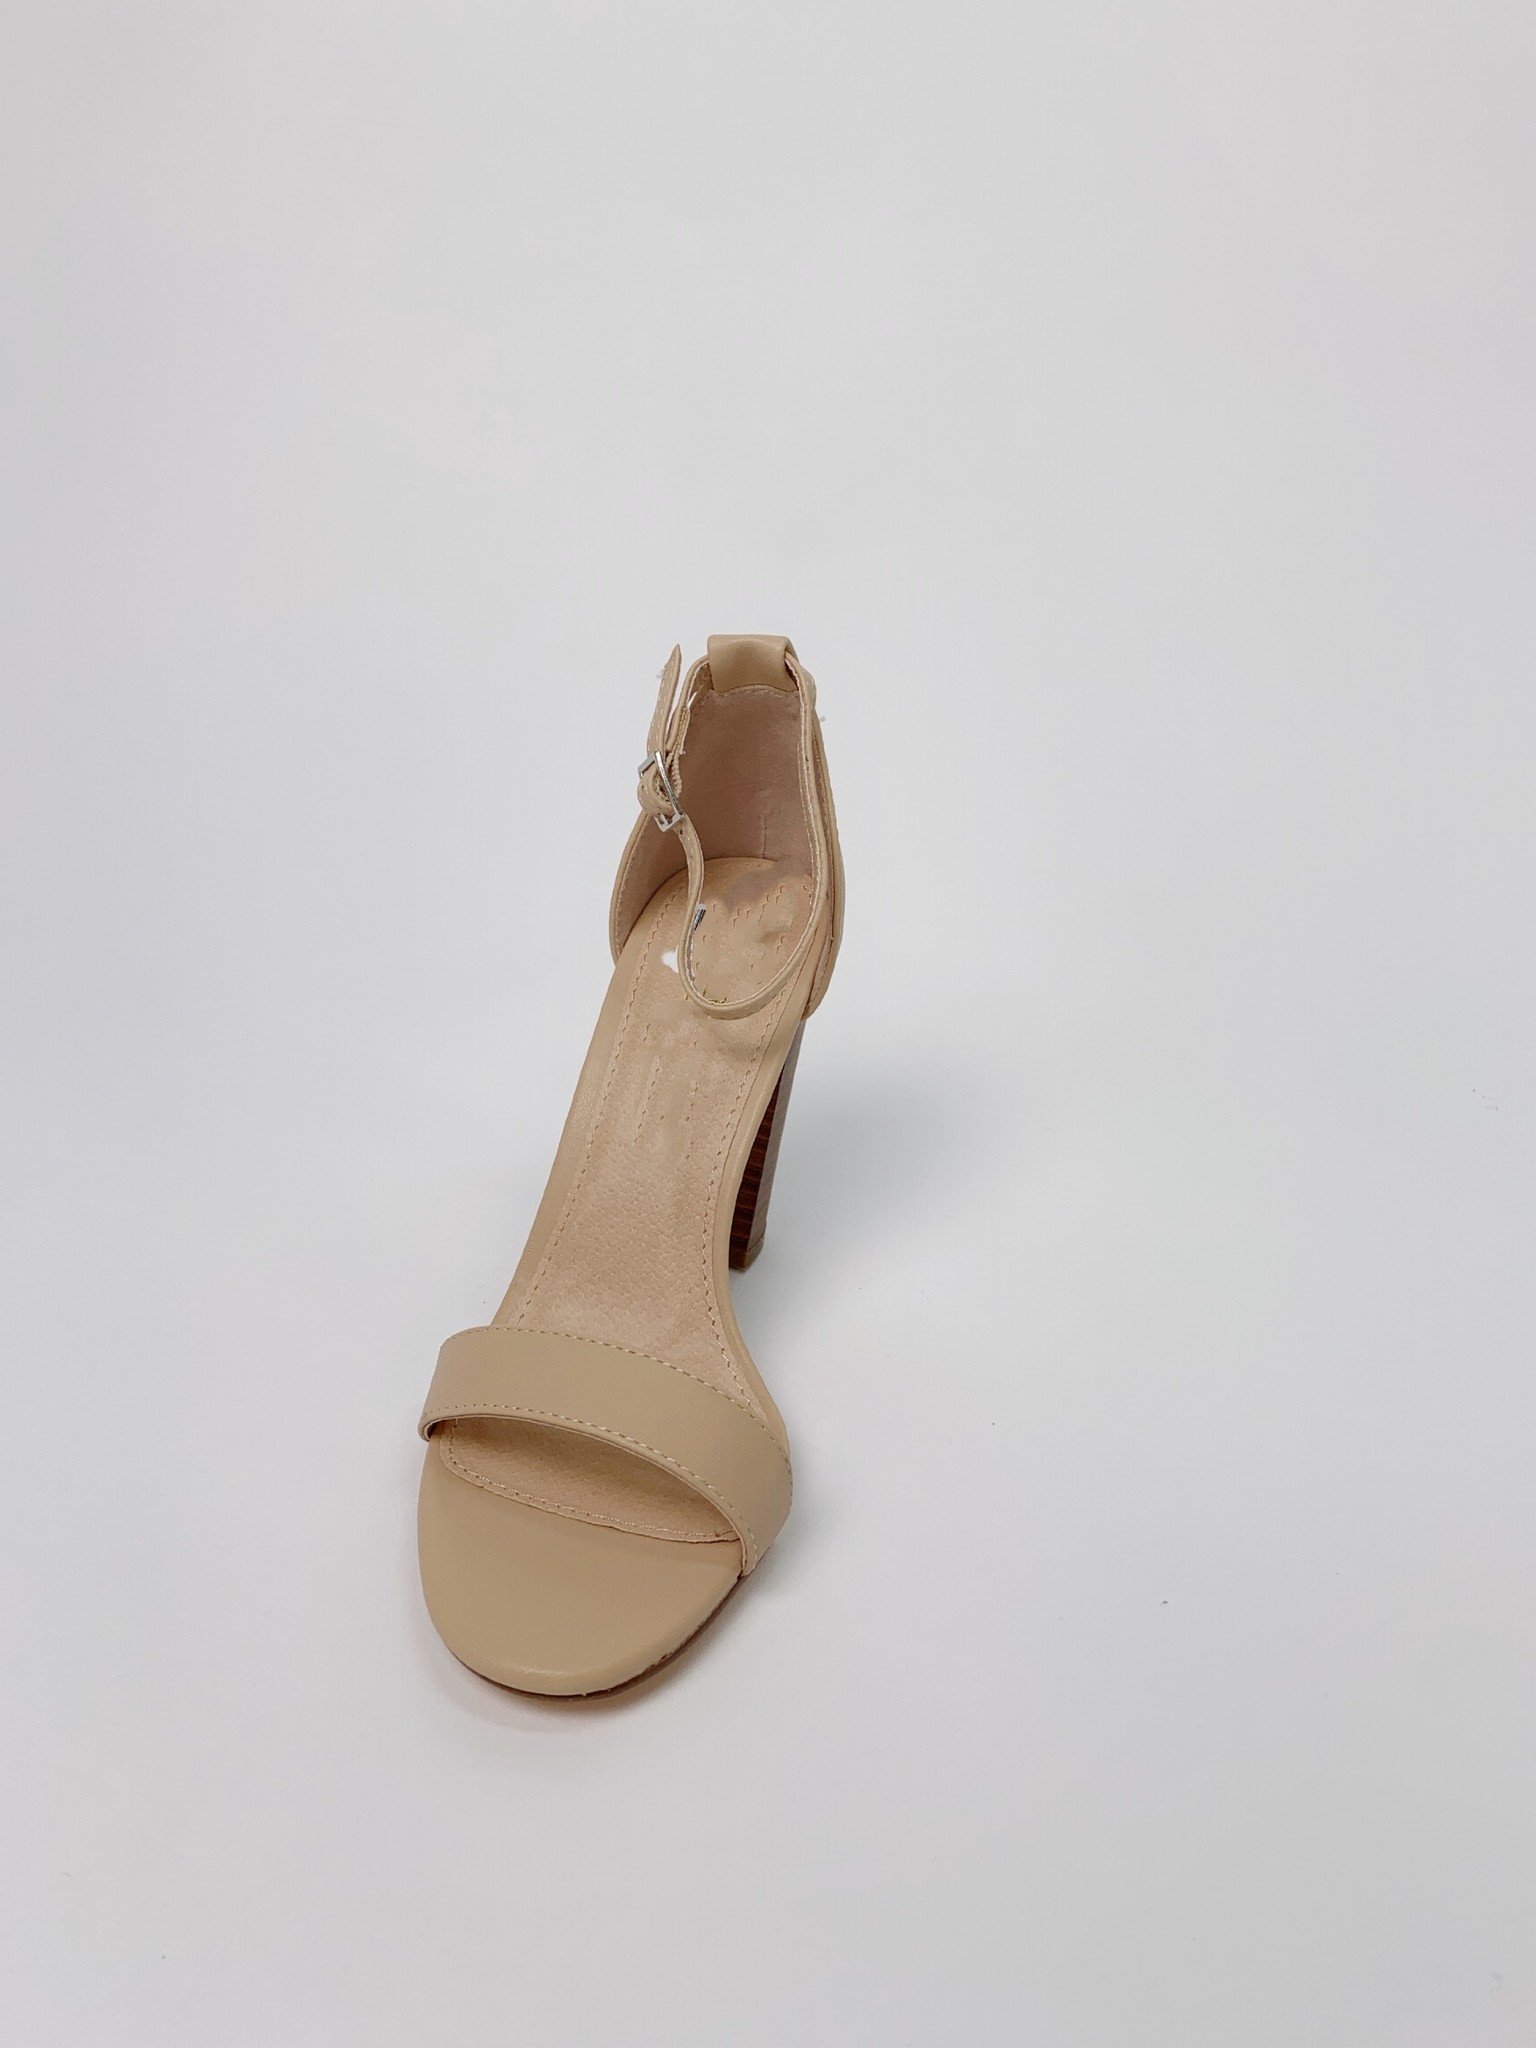 Pump Nude Ankle Strap Shoe